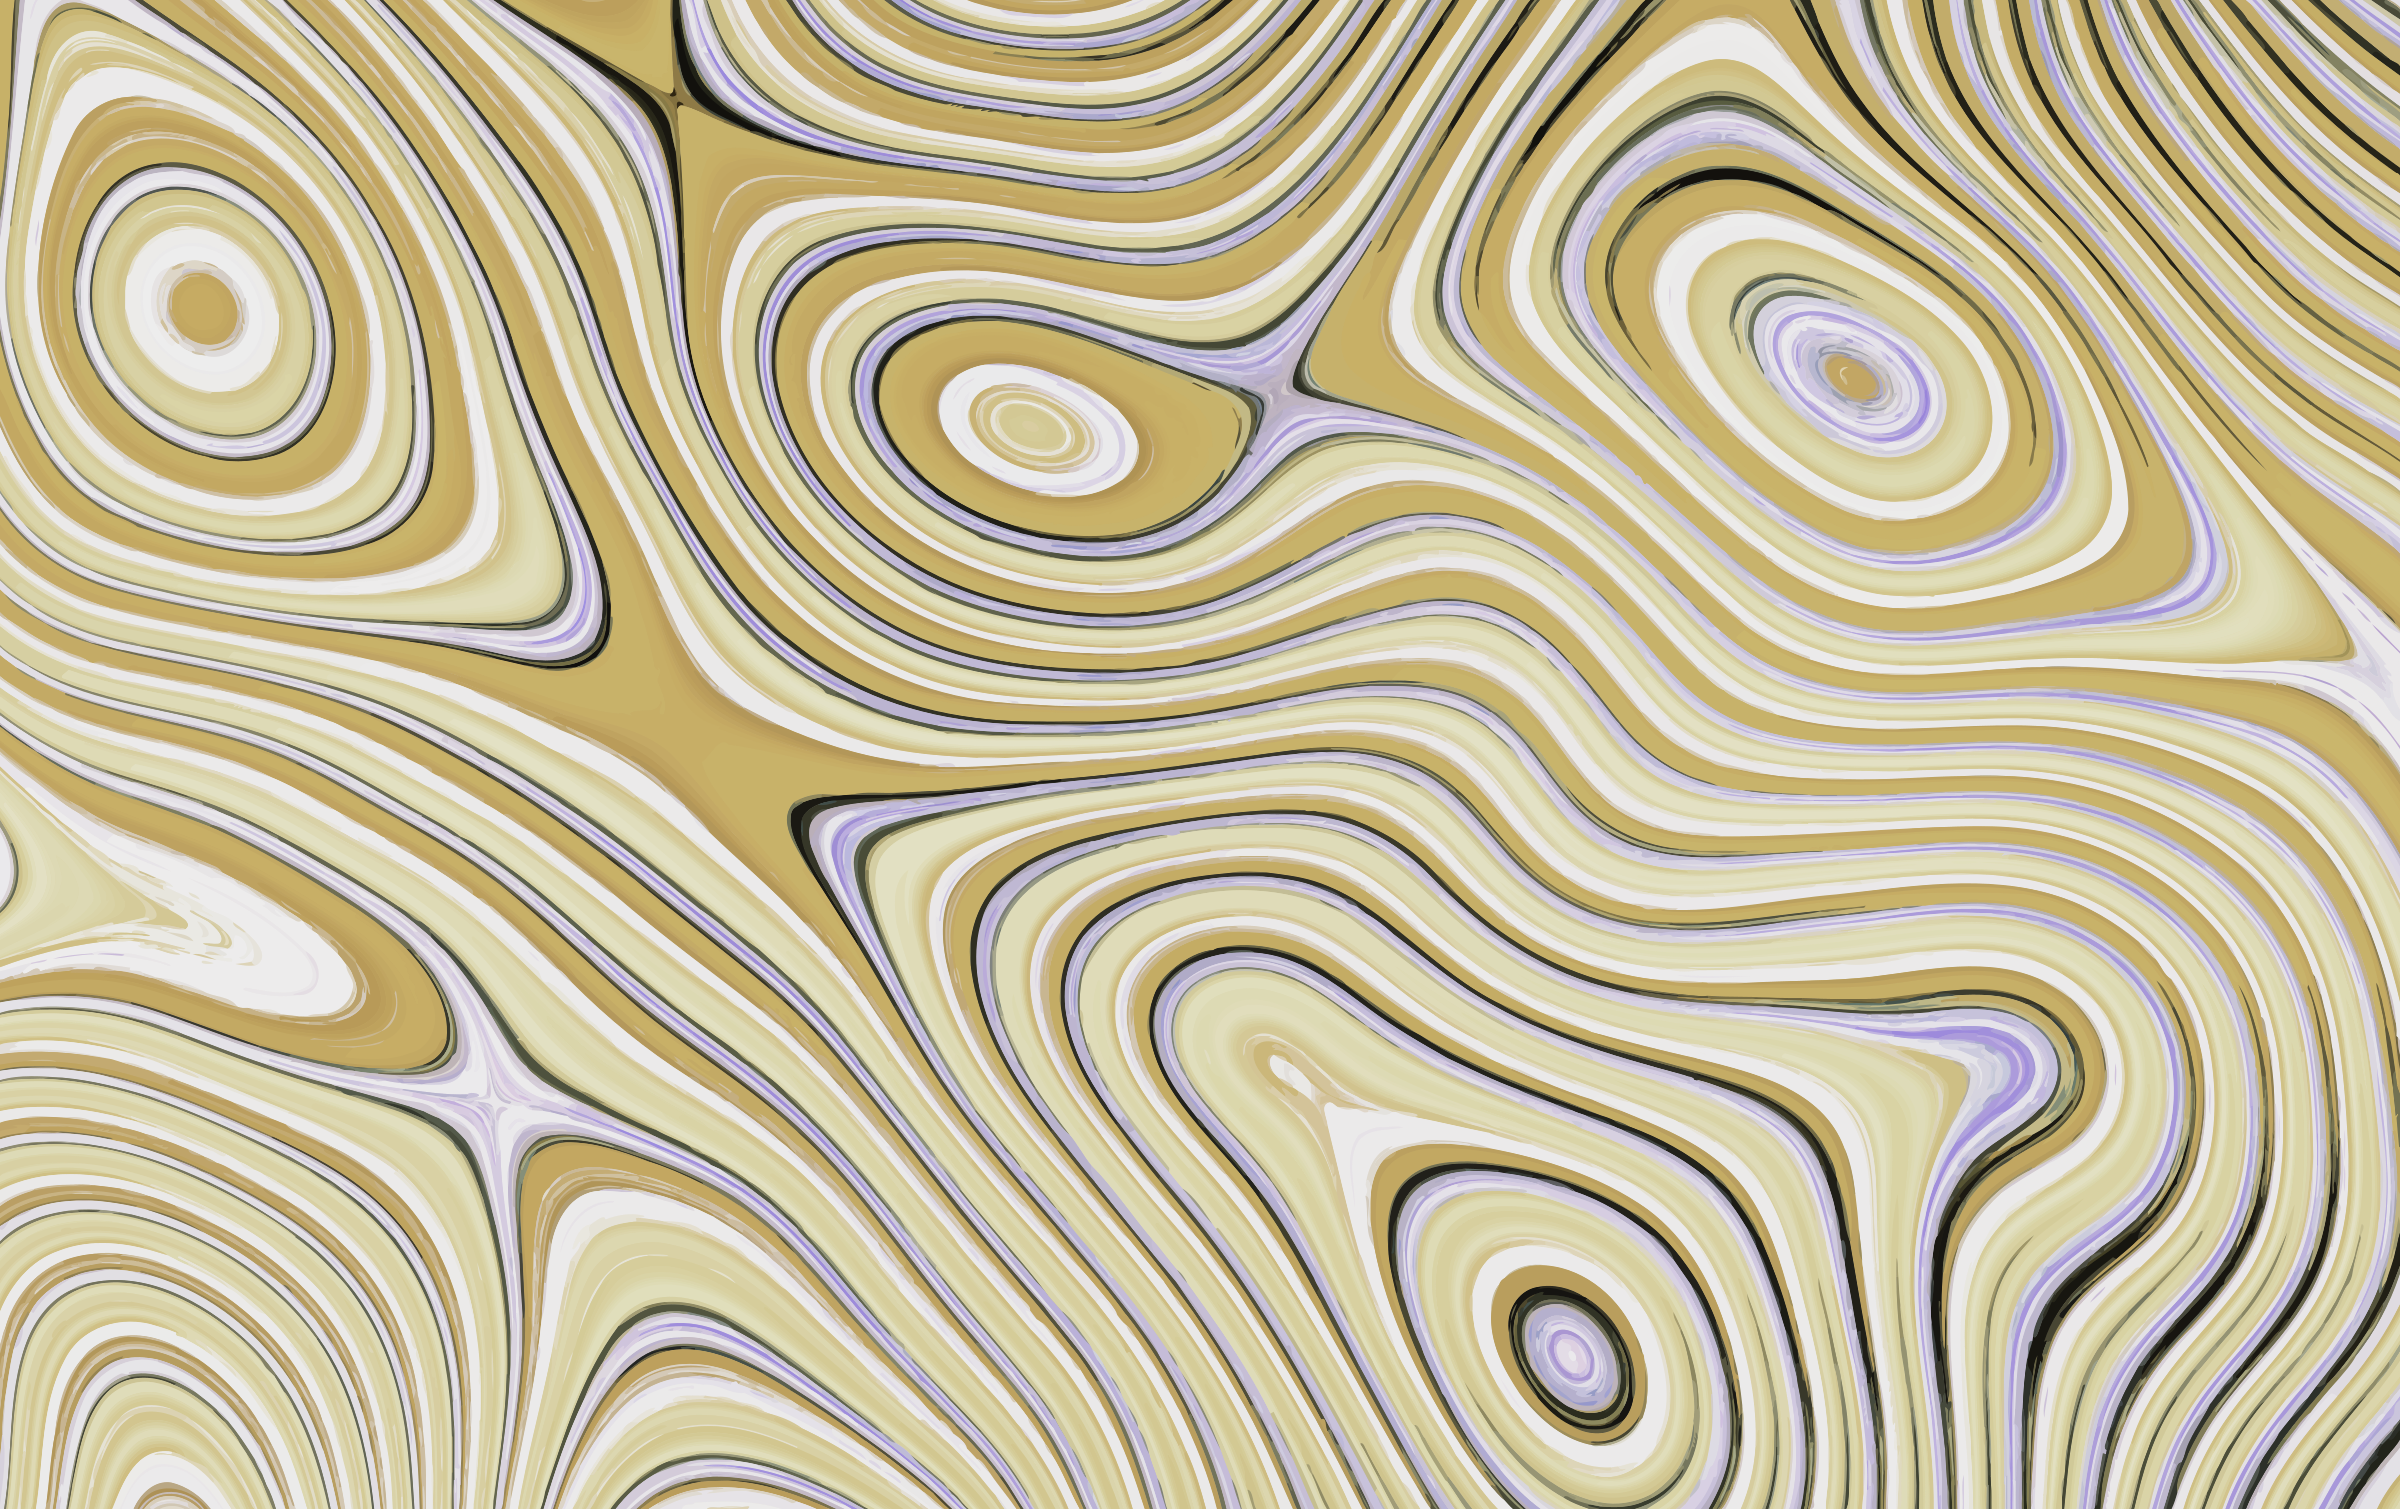 Background pattern 115 (colour 6) by Firkin